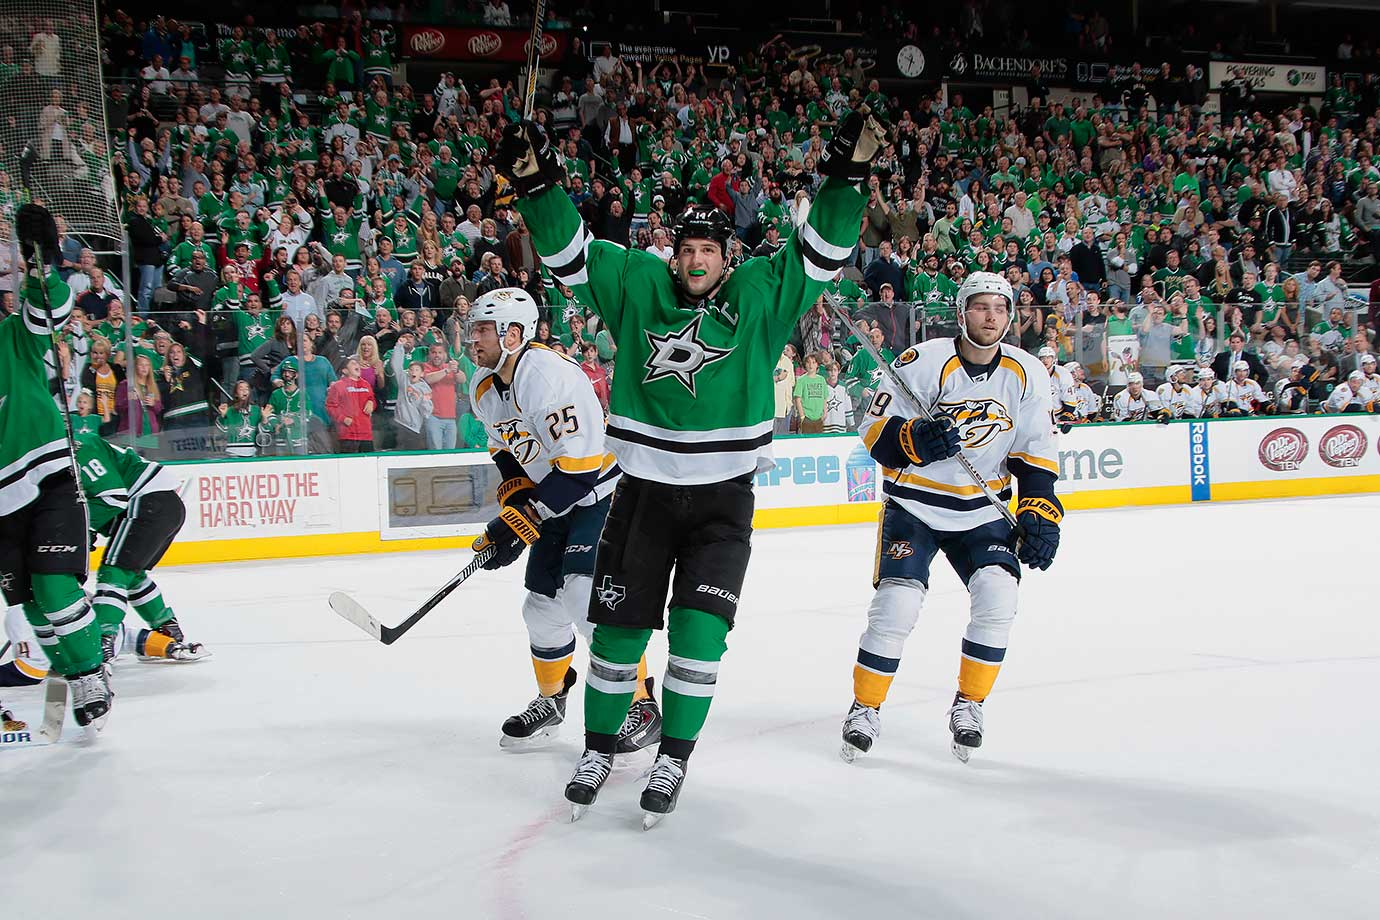 Sure, Stars sniper Benn claimed the Art Ross Trophy with the lowest point total in a non-lockout year since Stan Mikita's 87 points in 1967-68, which was a 74-game season, by the way. But how he did it will go down in history. Trailing John Tavares of the Islanders by three points heading into the regular season finale with Nashville, Benn scored three times, then clinched the title with an assist on a Cody Eakin tally with just 8.5 seconds remaining in regulation as Dallas won, 4-1.